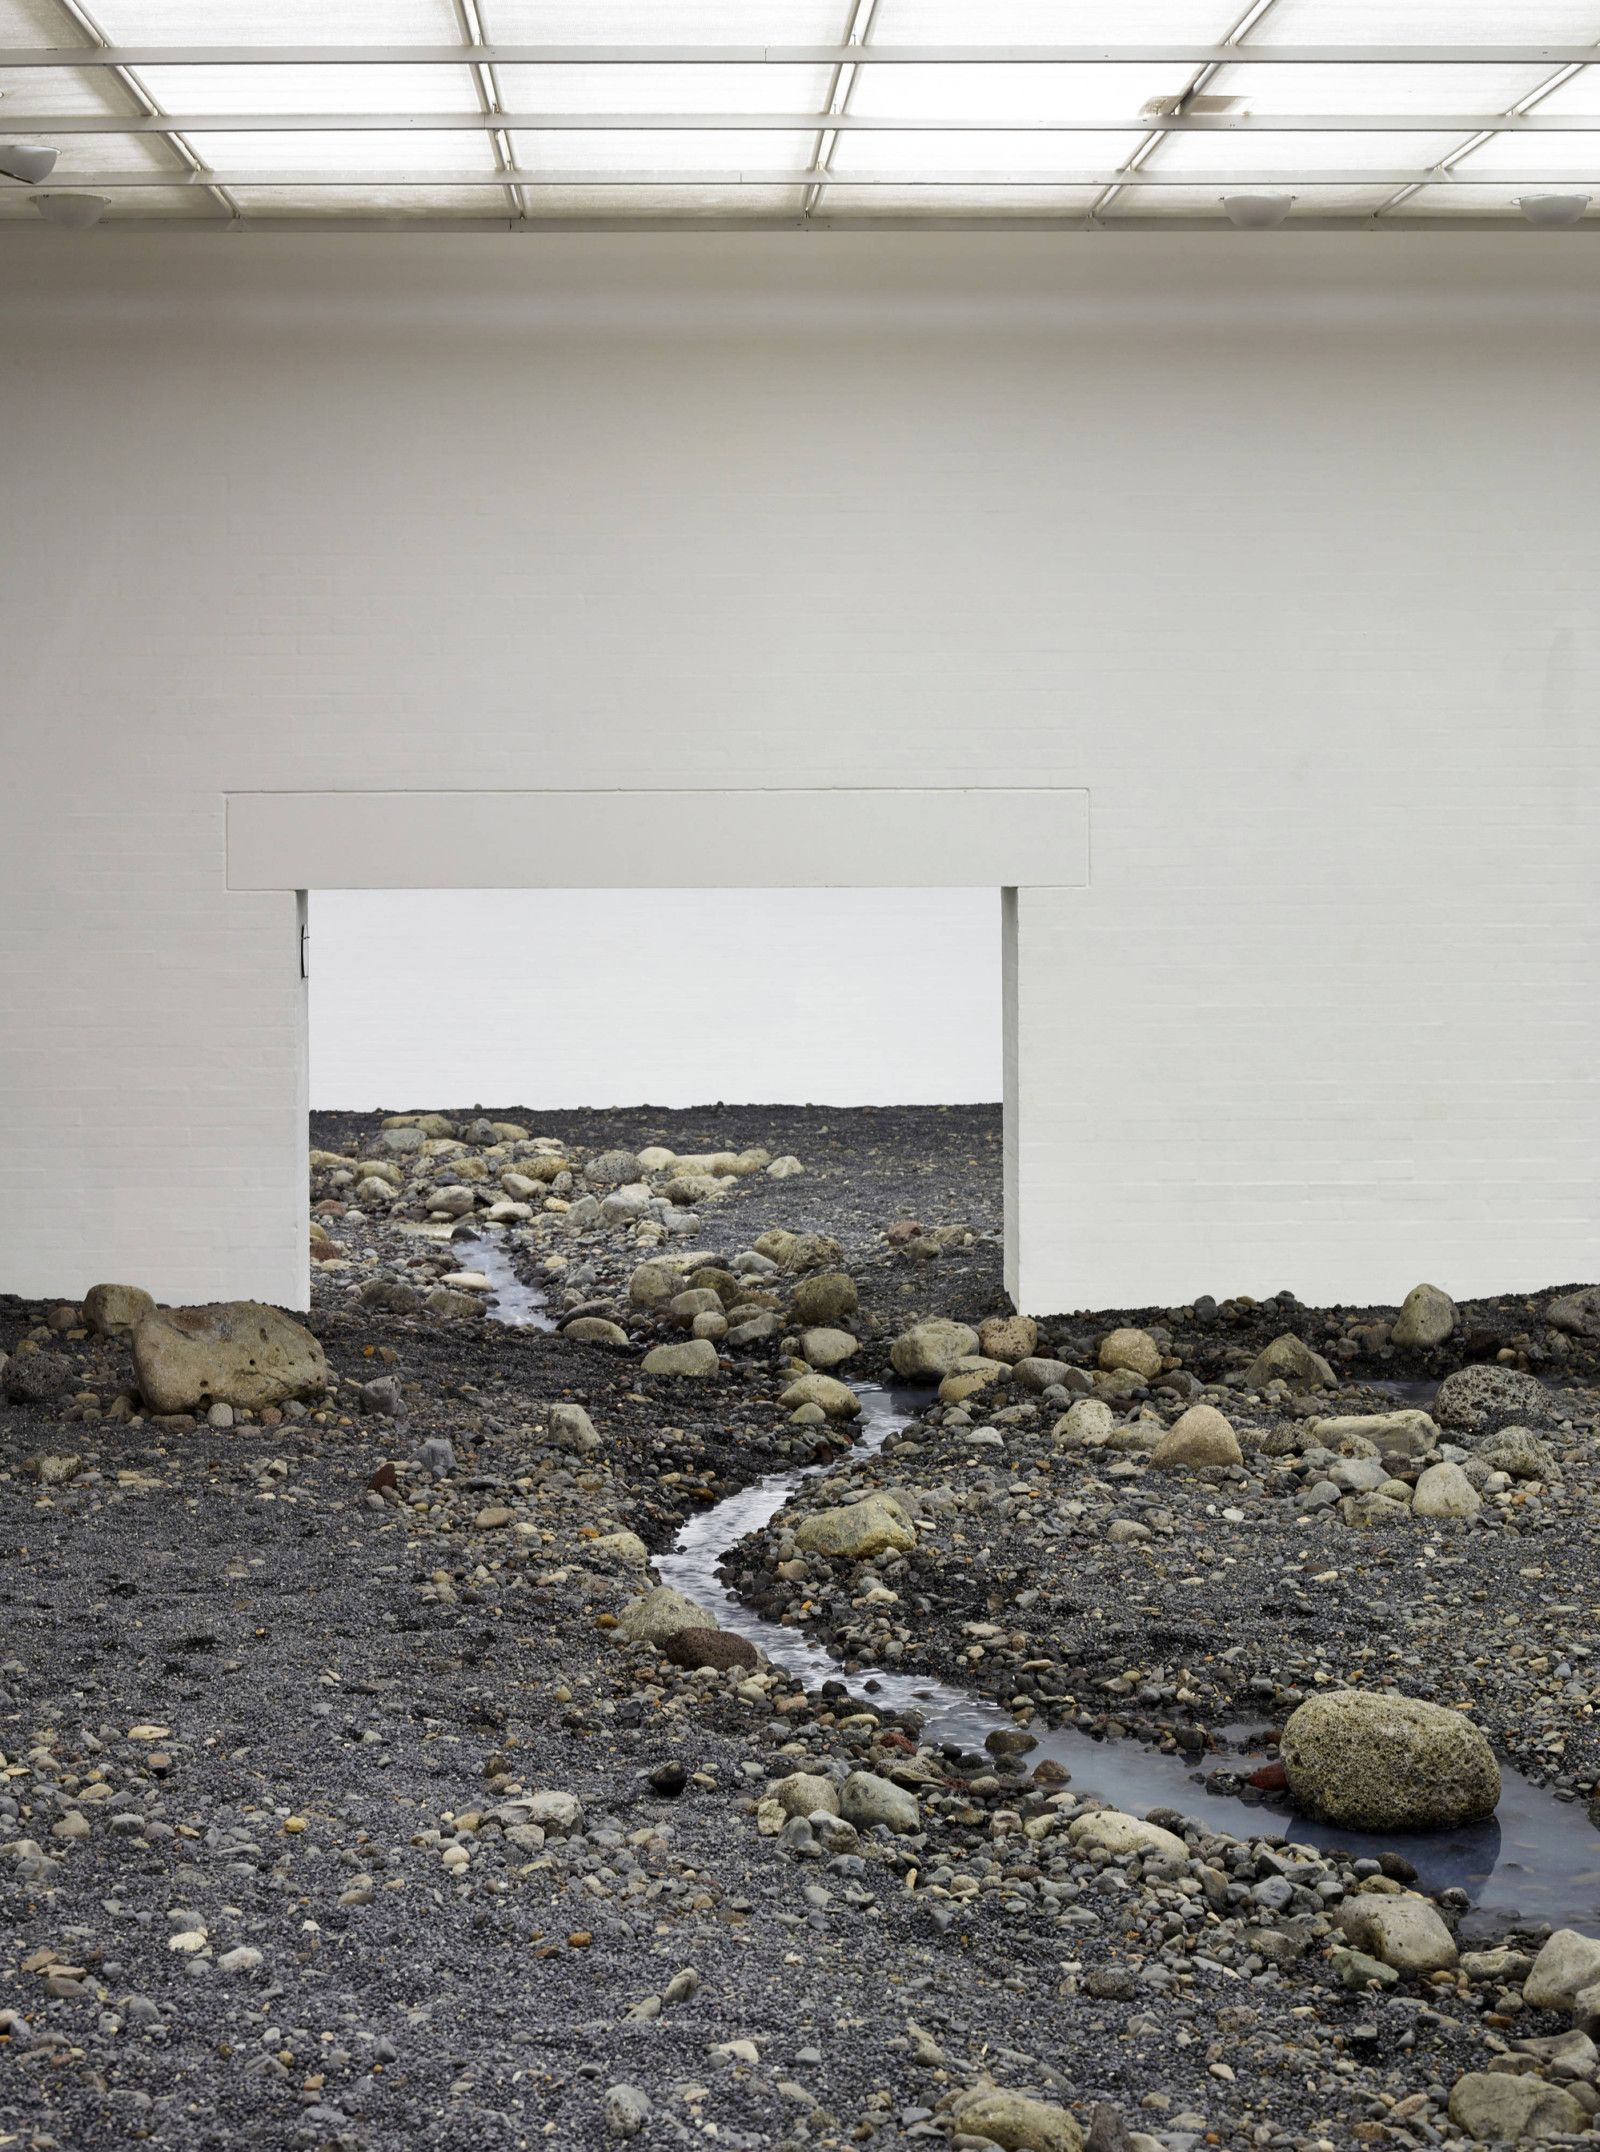 Olafur Eliasson installed a riverbed in a museum